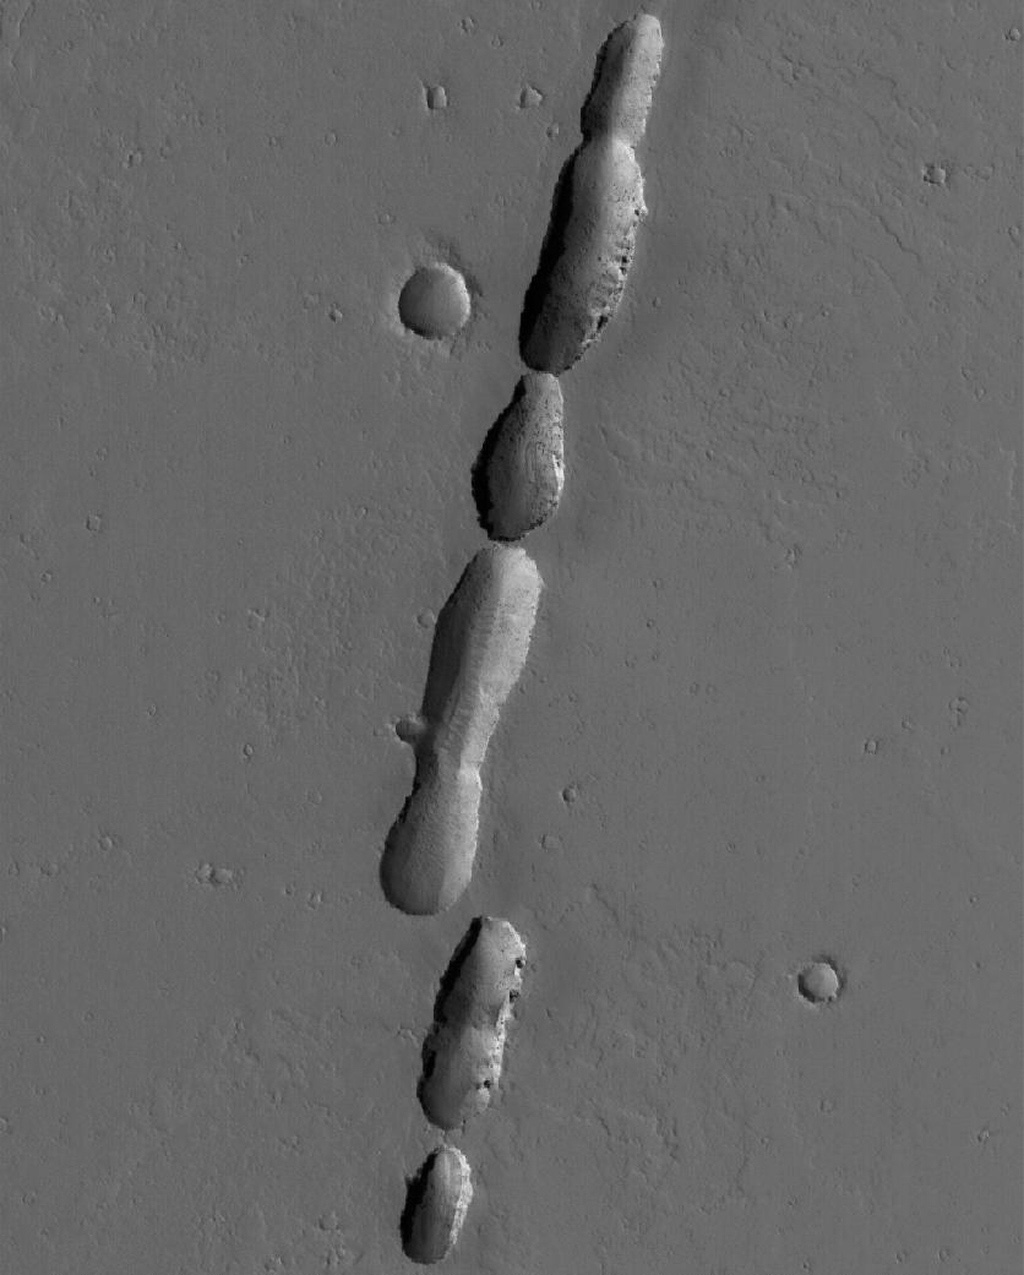 NASA's Mars Global Surveyor shows a chain of pits associated with dust-covered lava flows in northern Tharsis on Mars. The pits formed along a fault; some of the flows may have erupted along this same fault.